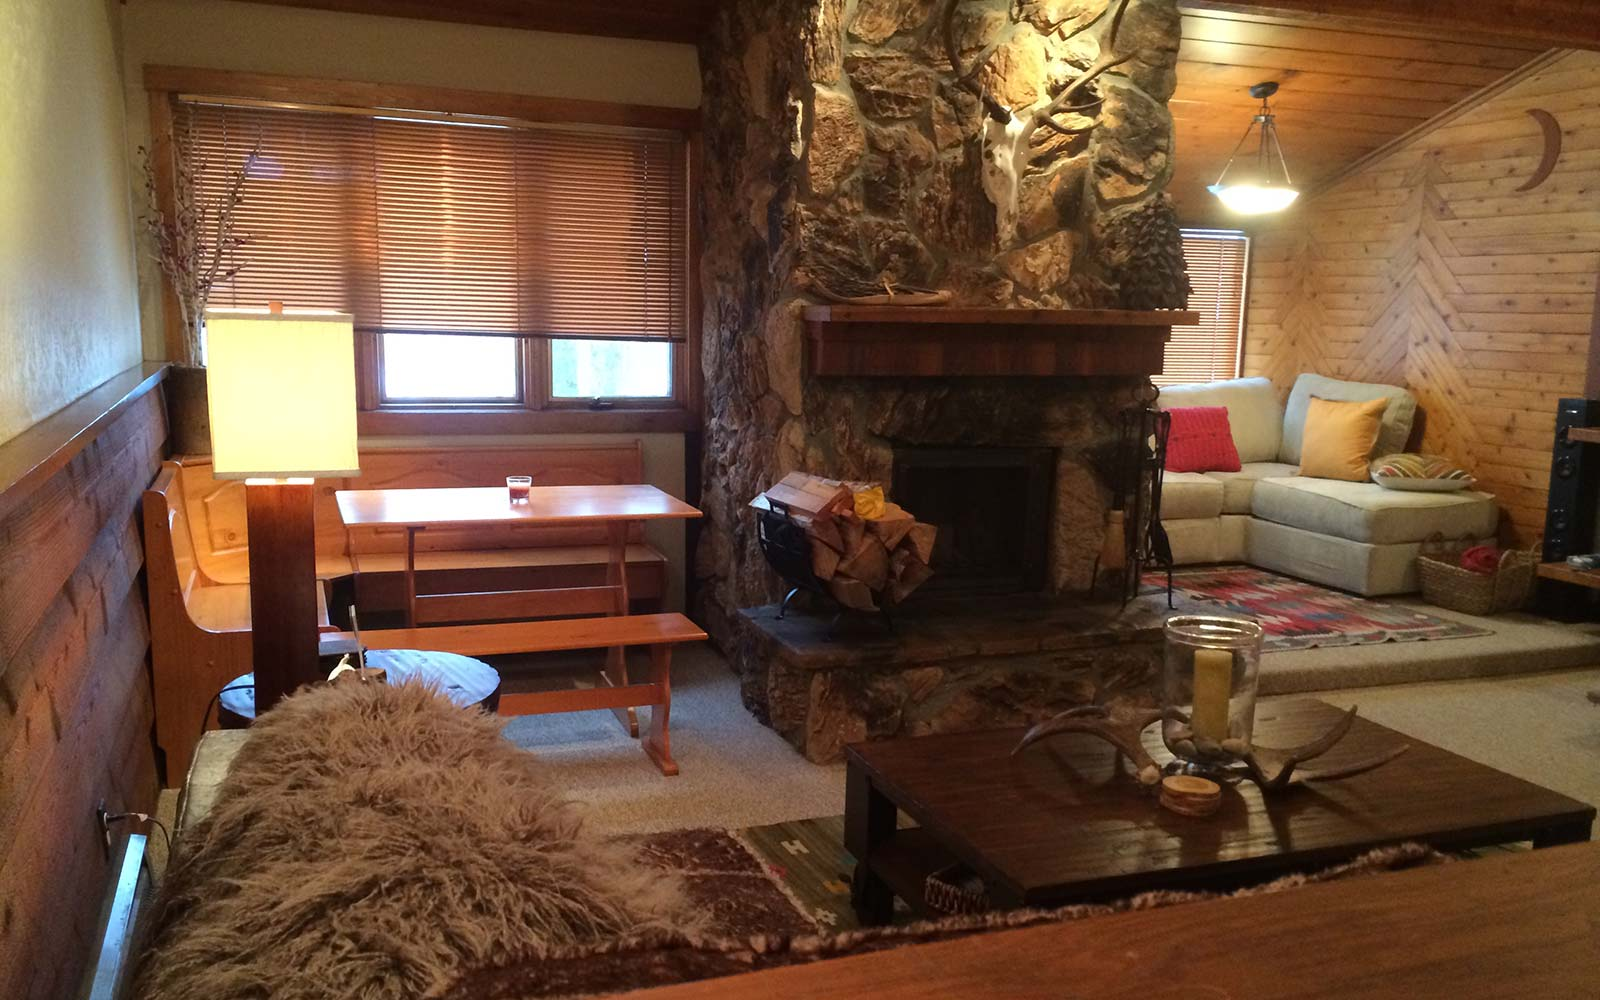 jackson hole wyoming national parks vacation airbnb rental